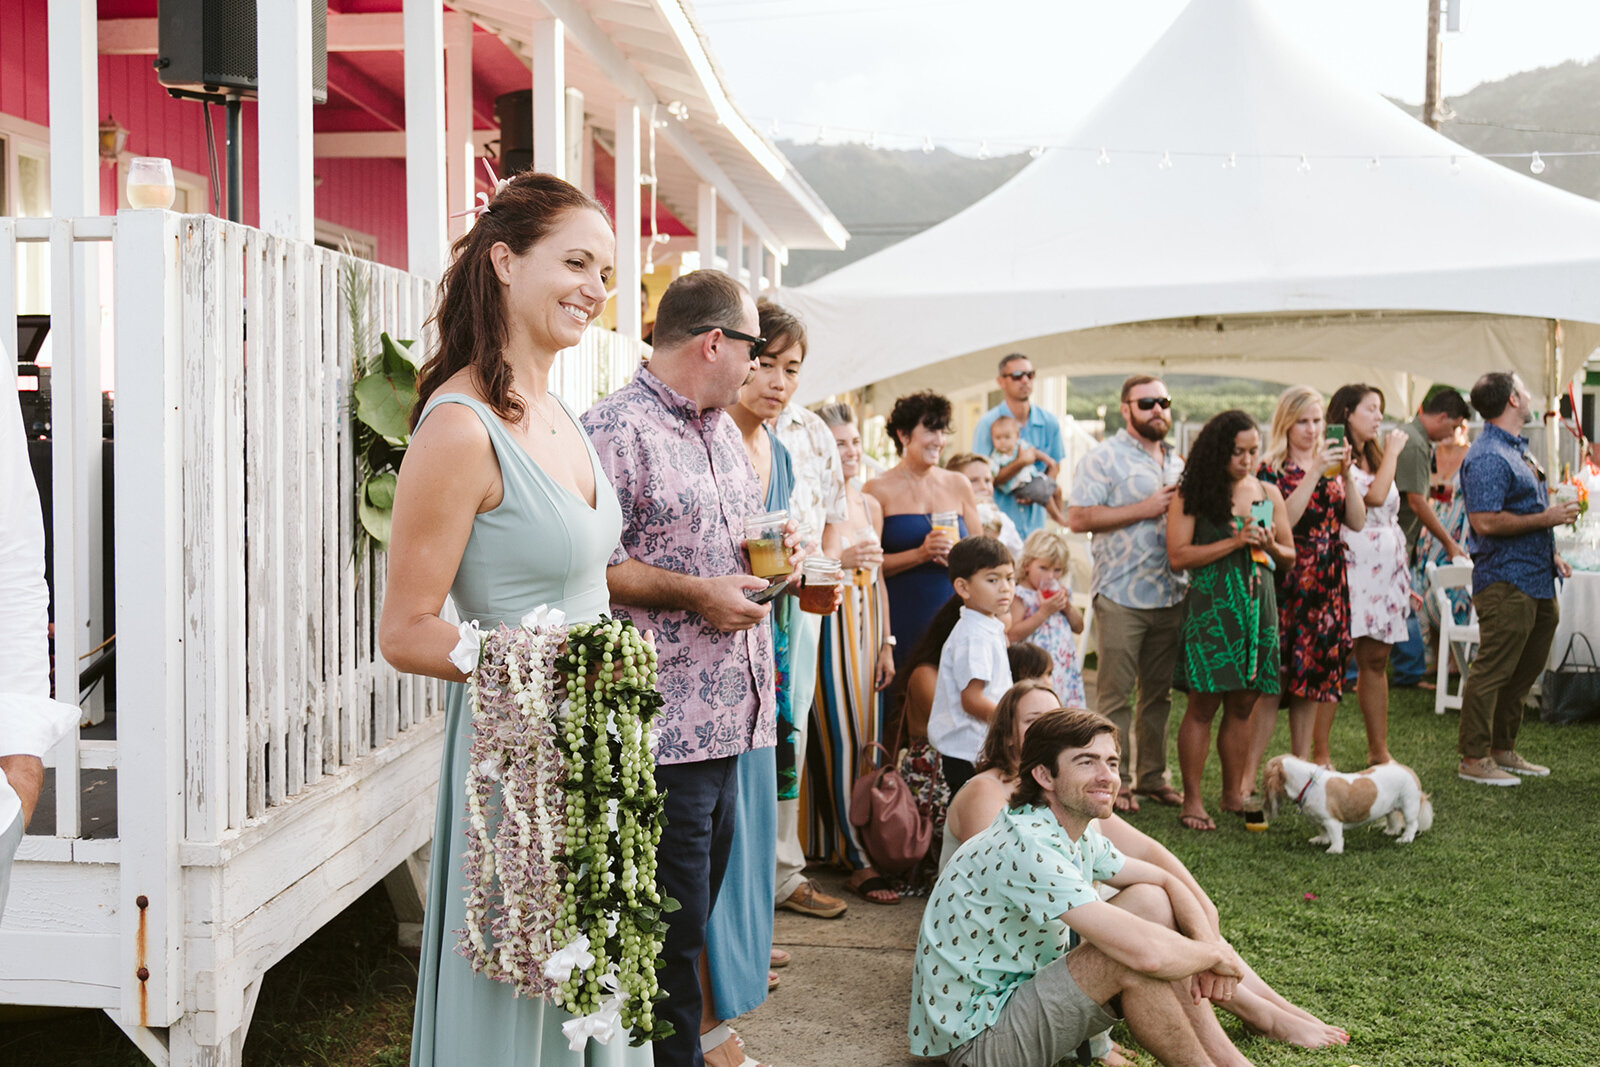 Mokuleia-North-Shore-Hawaii-Beach-House-Wedding-ceremony-grass-lawn